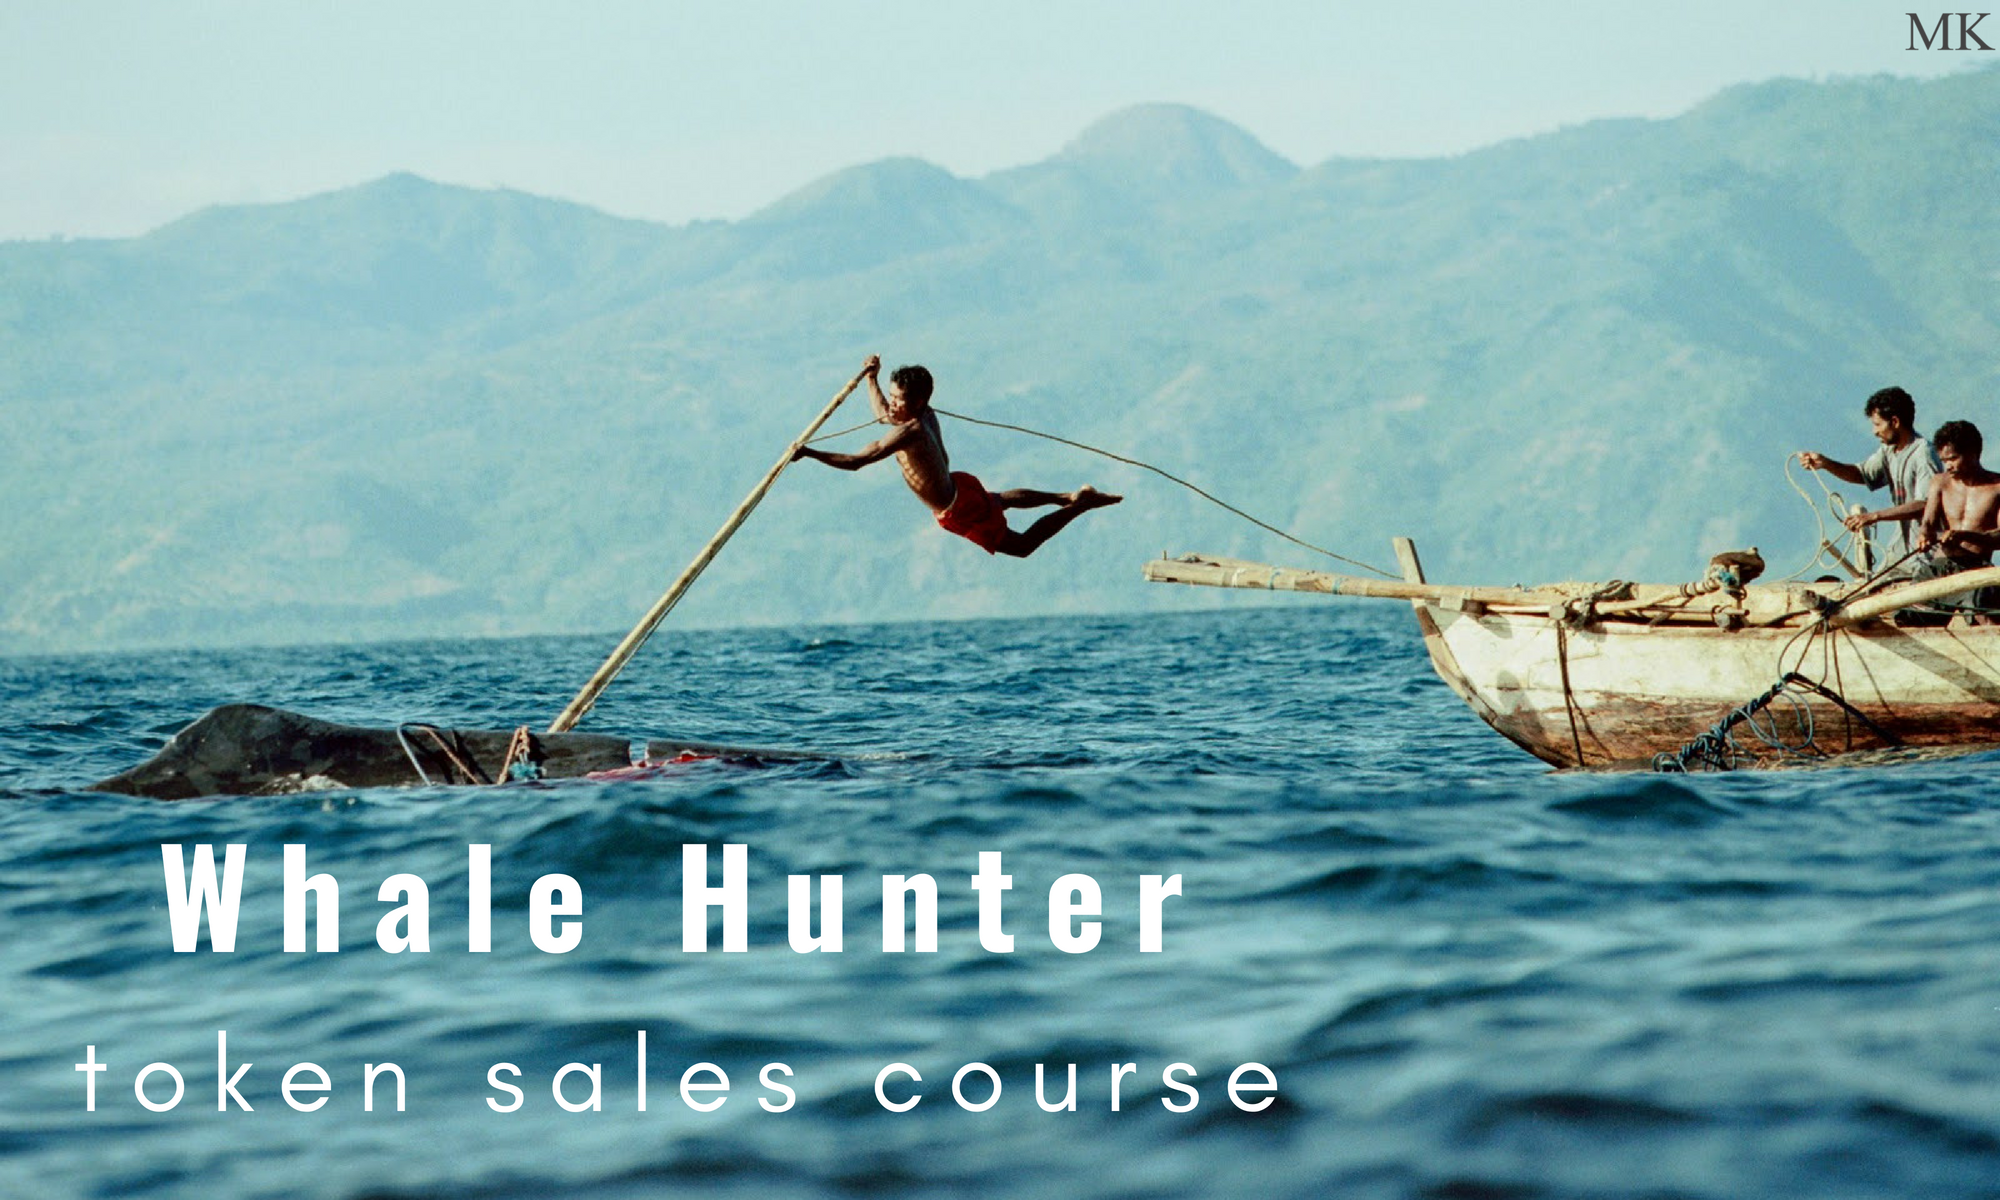 Whale Hunter Token Sales Course